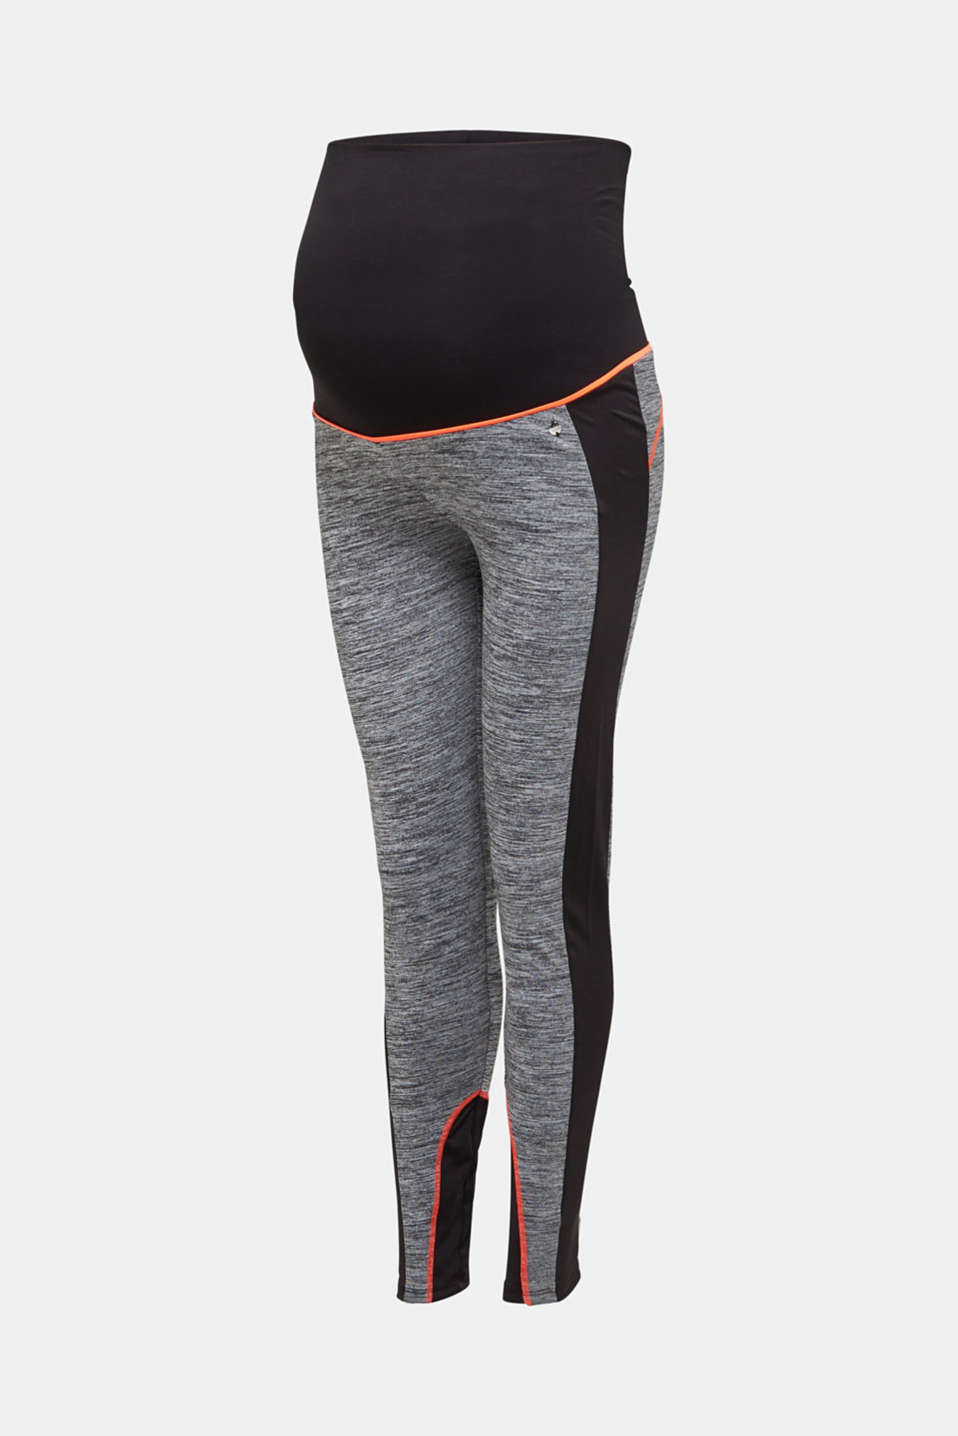 Colour block leggings, over-bump waistband, LCBLACK, detail image number 3